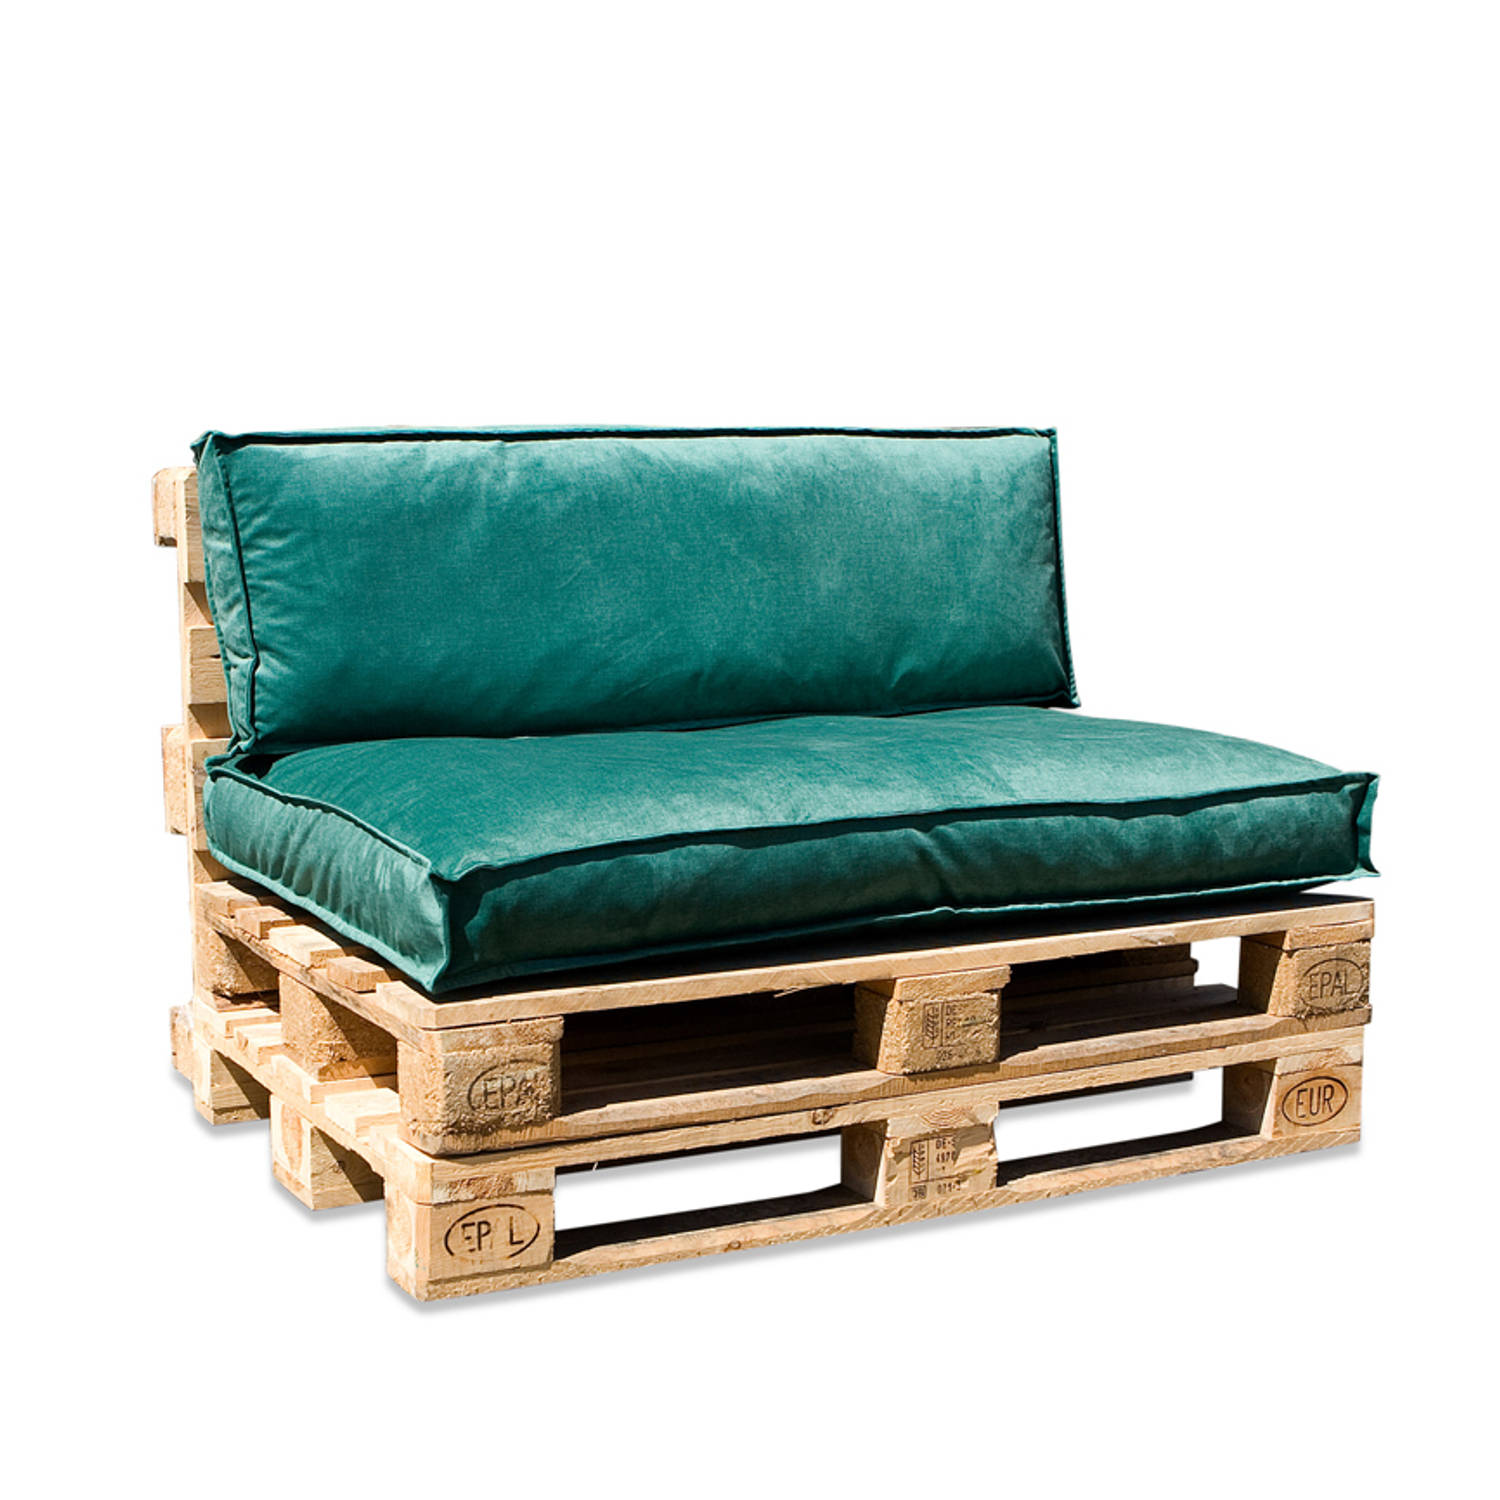 In The Mood Collection In The Mood Palletkussenset Royal Velvet Basilicum